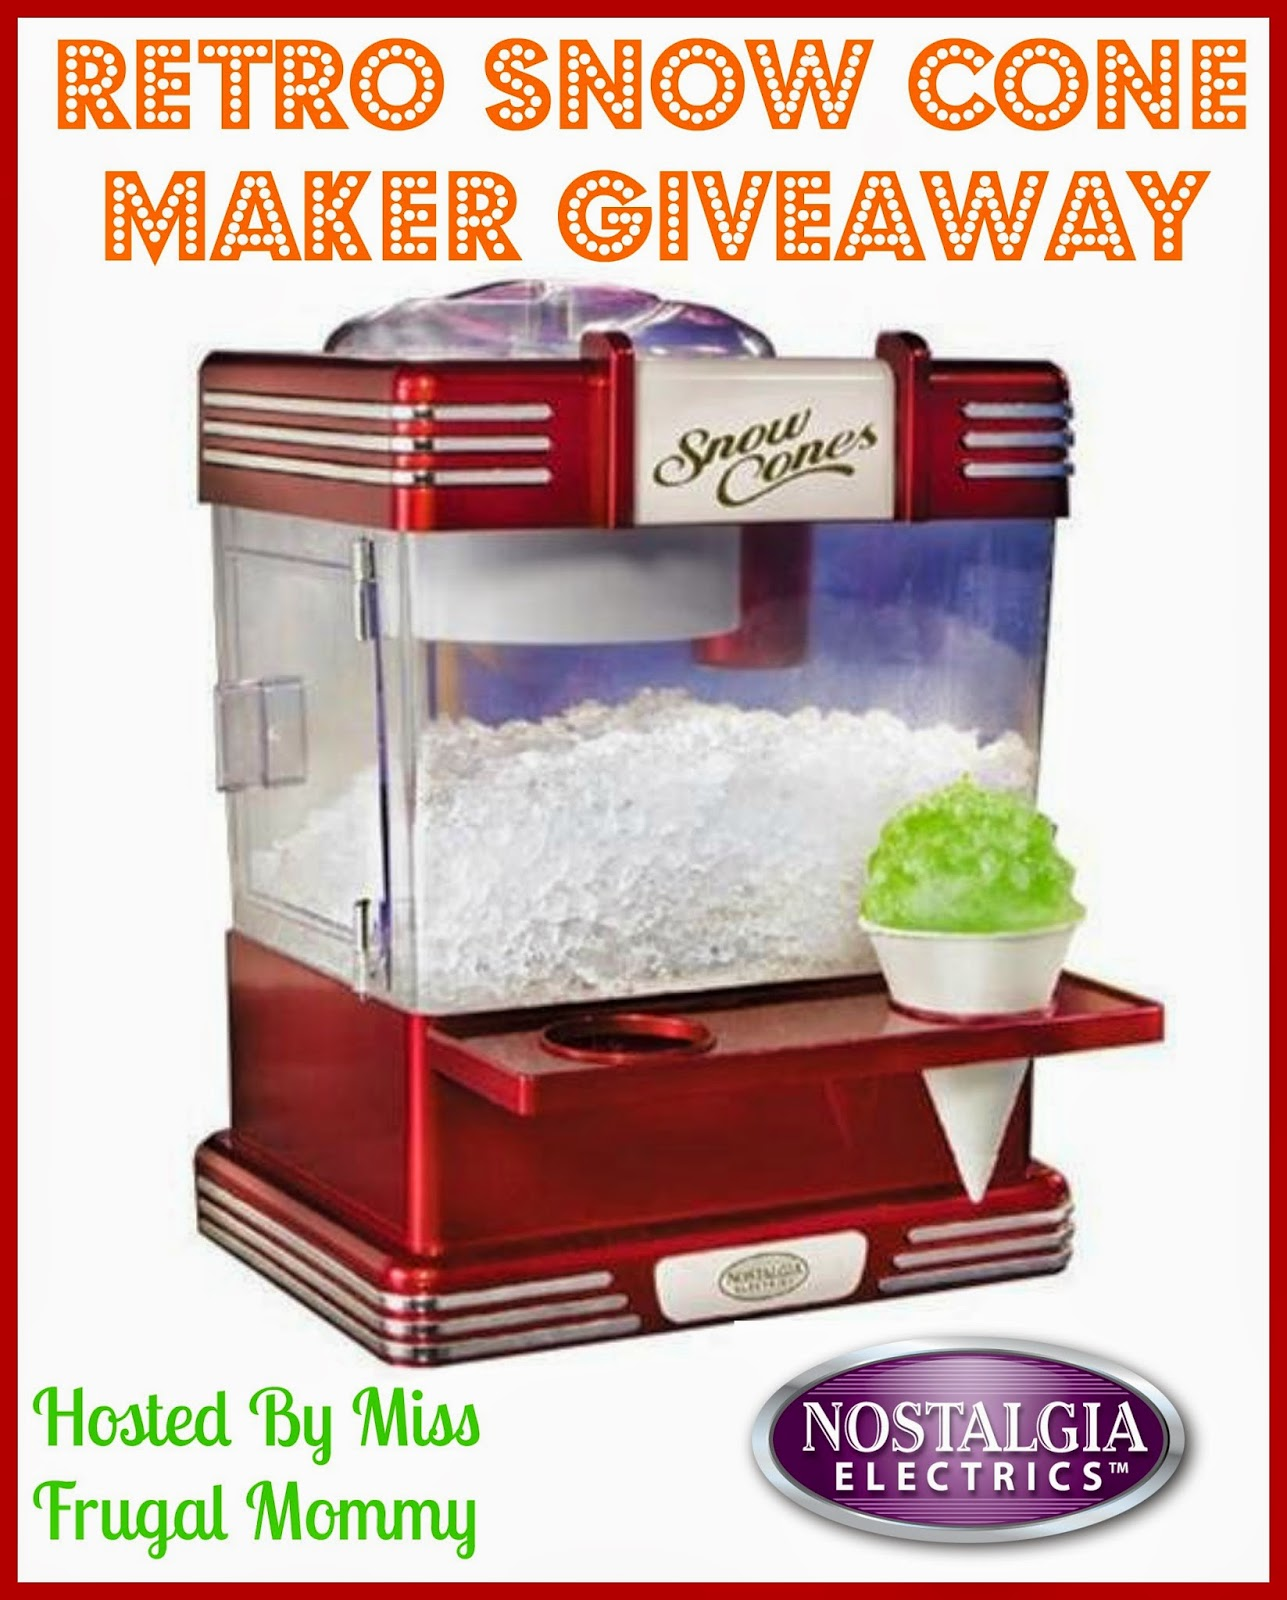 Nostalgia Electrics Retro Snow Cone Maker Giveaway